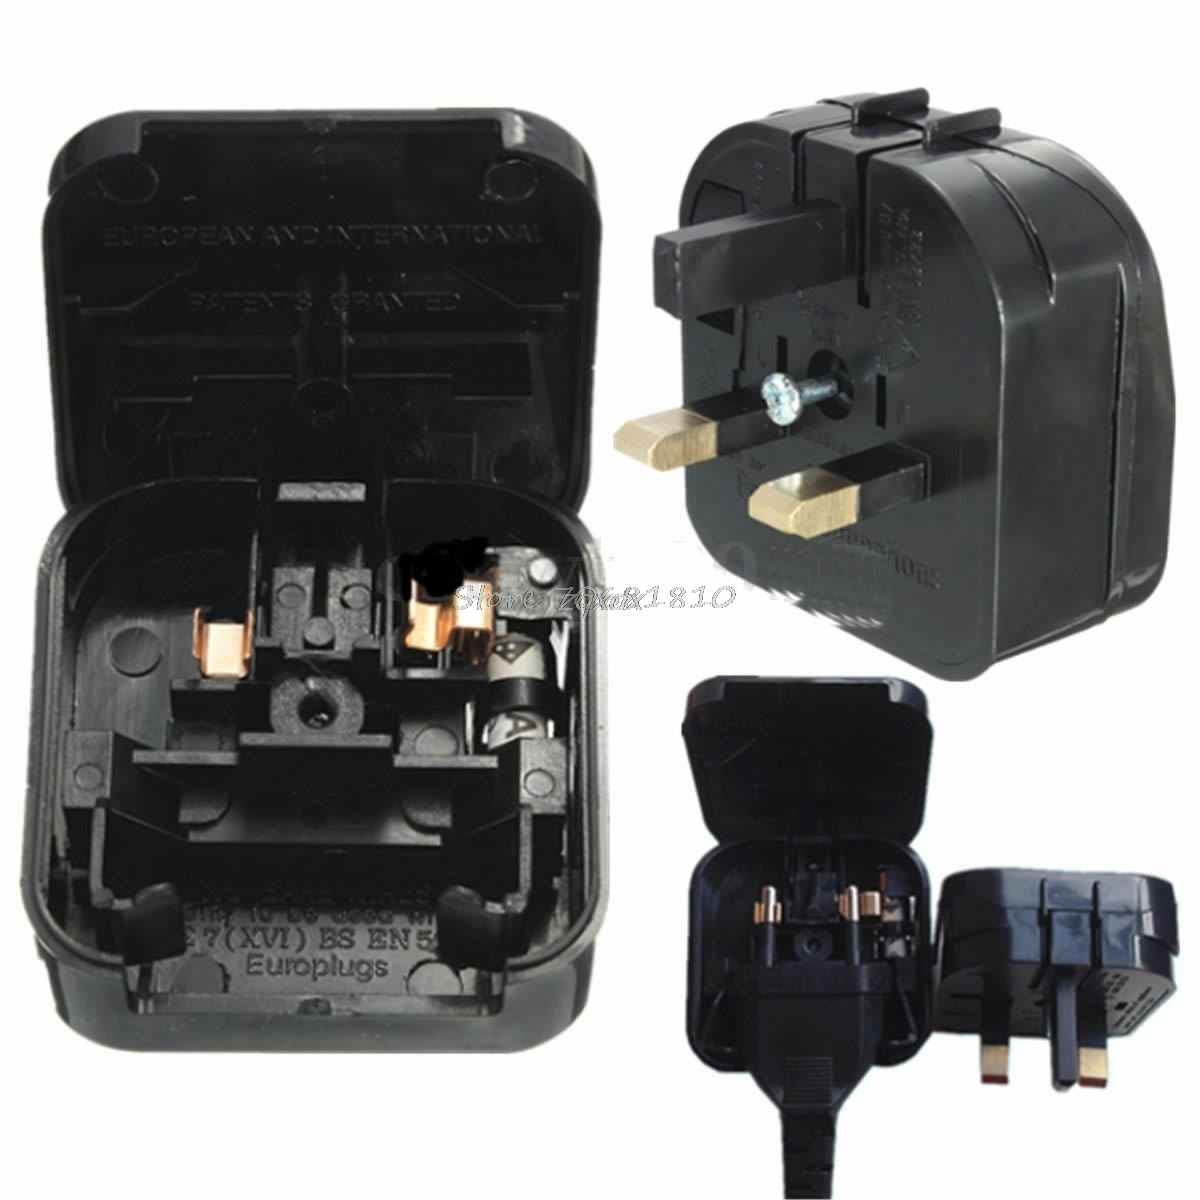 New European Euro EU 2 Pin to UK 3Pin Plug Adapter Power Socket Travel Converter Z09 Drop ship